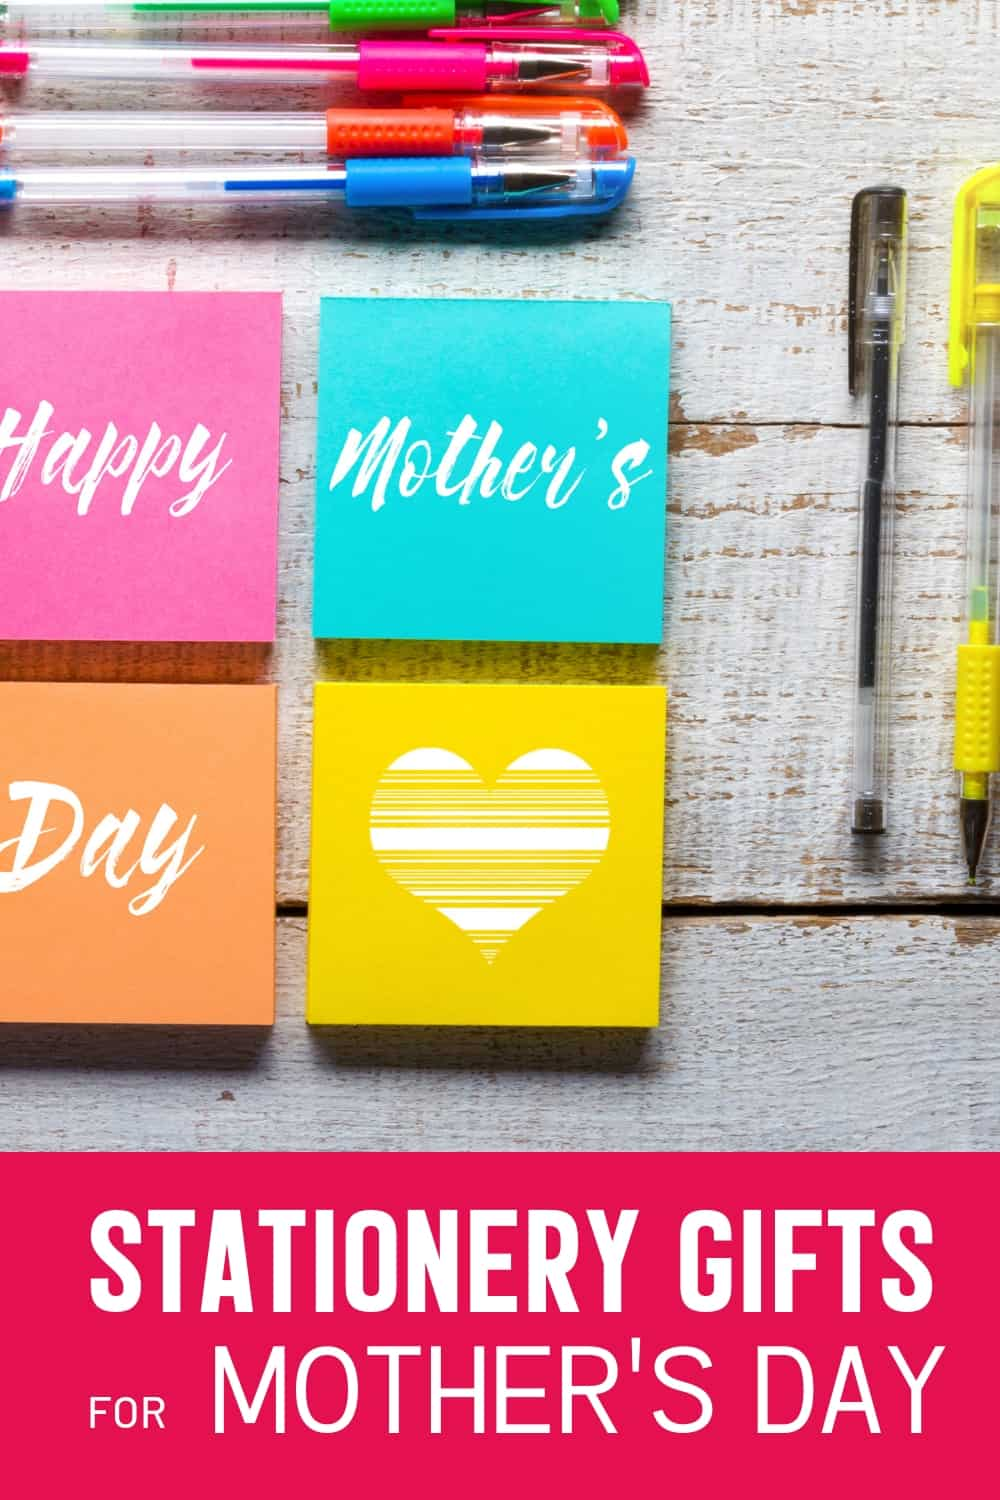 Stationery - Mother's Day Gift Ideas